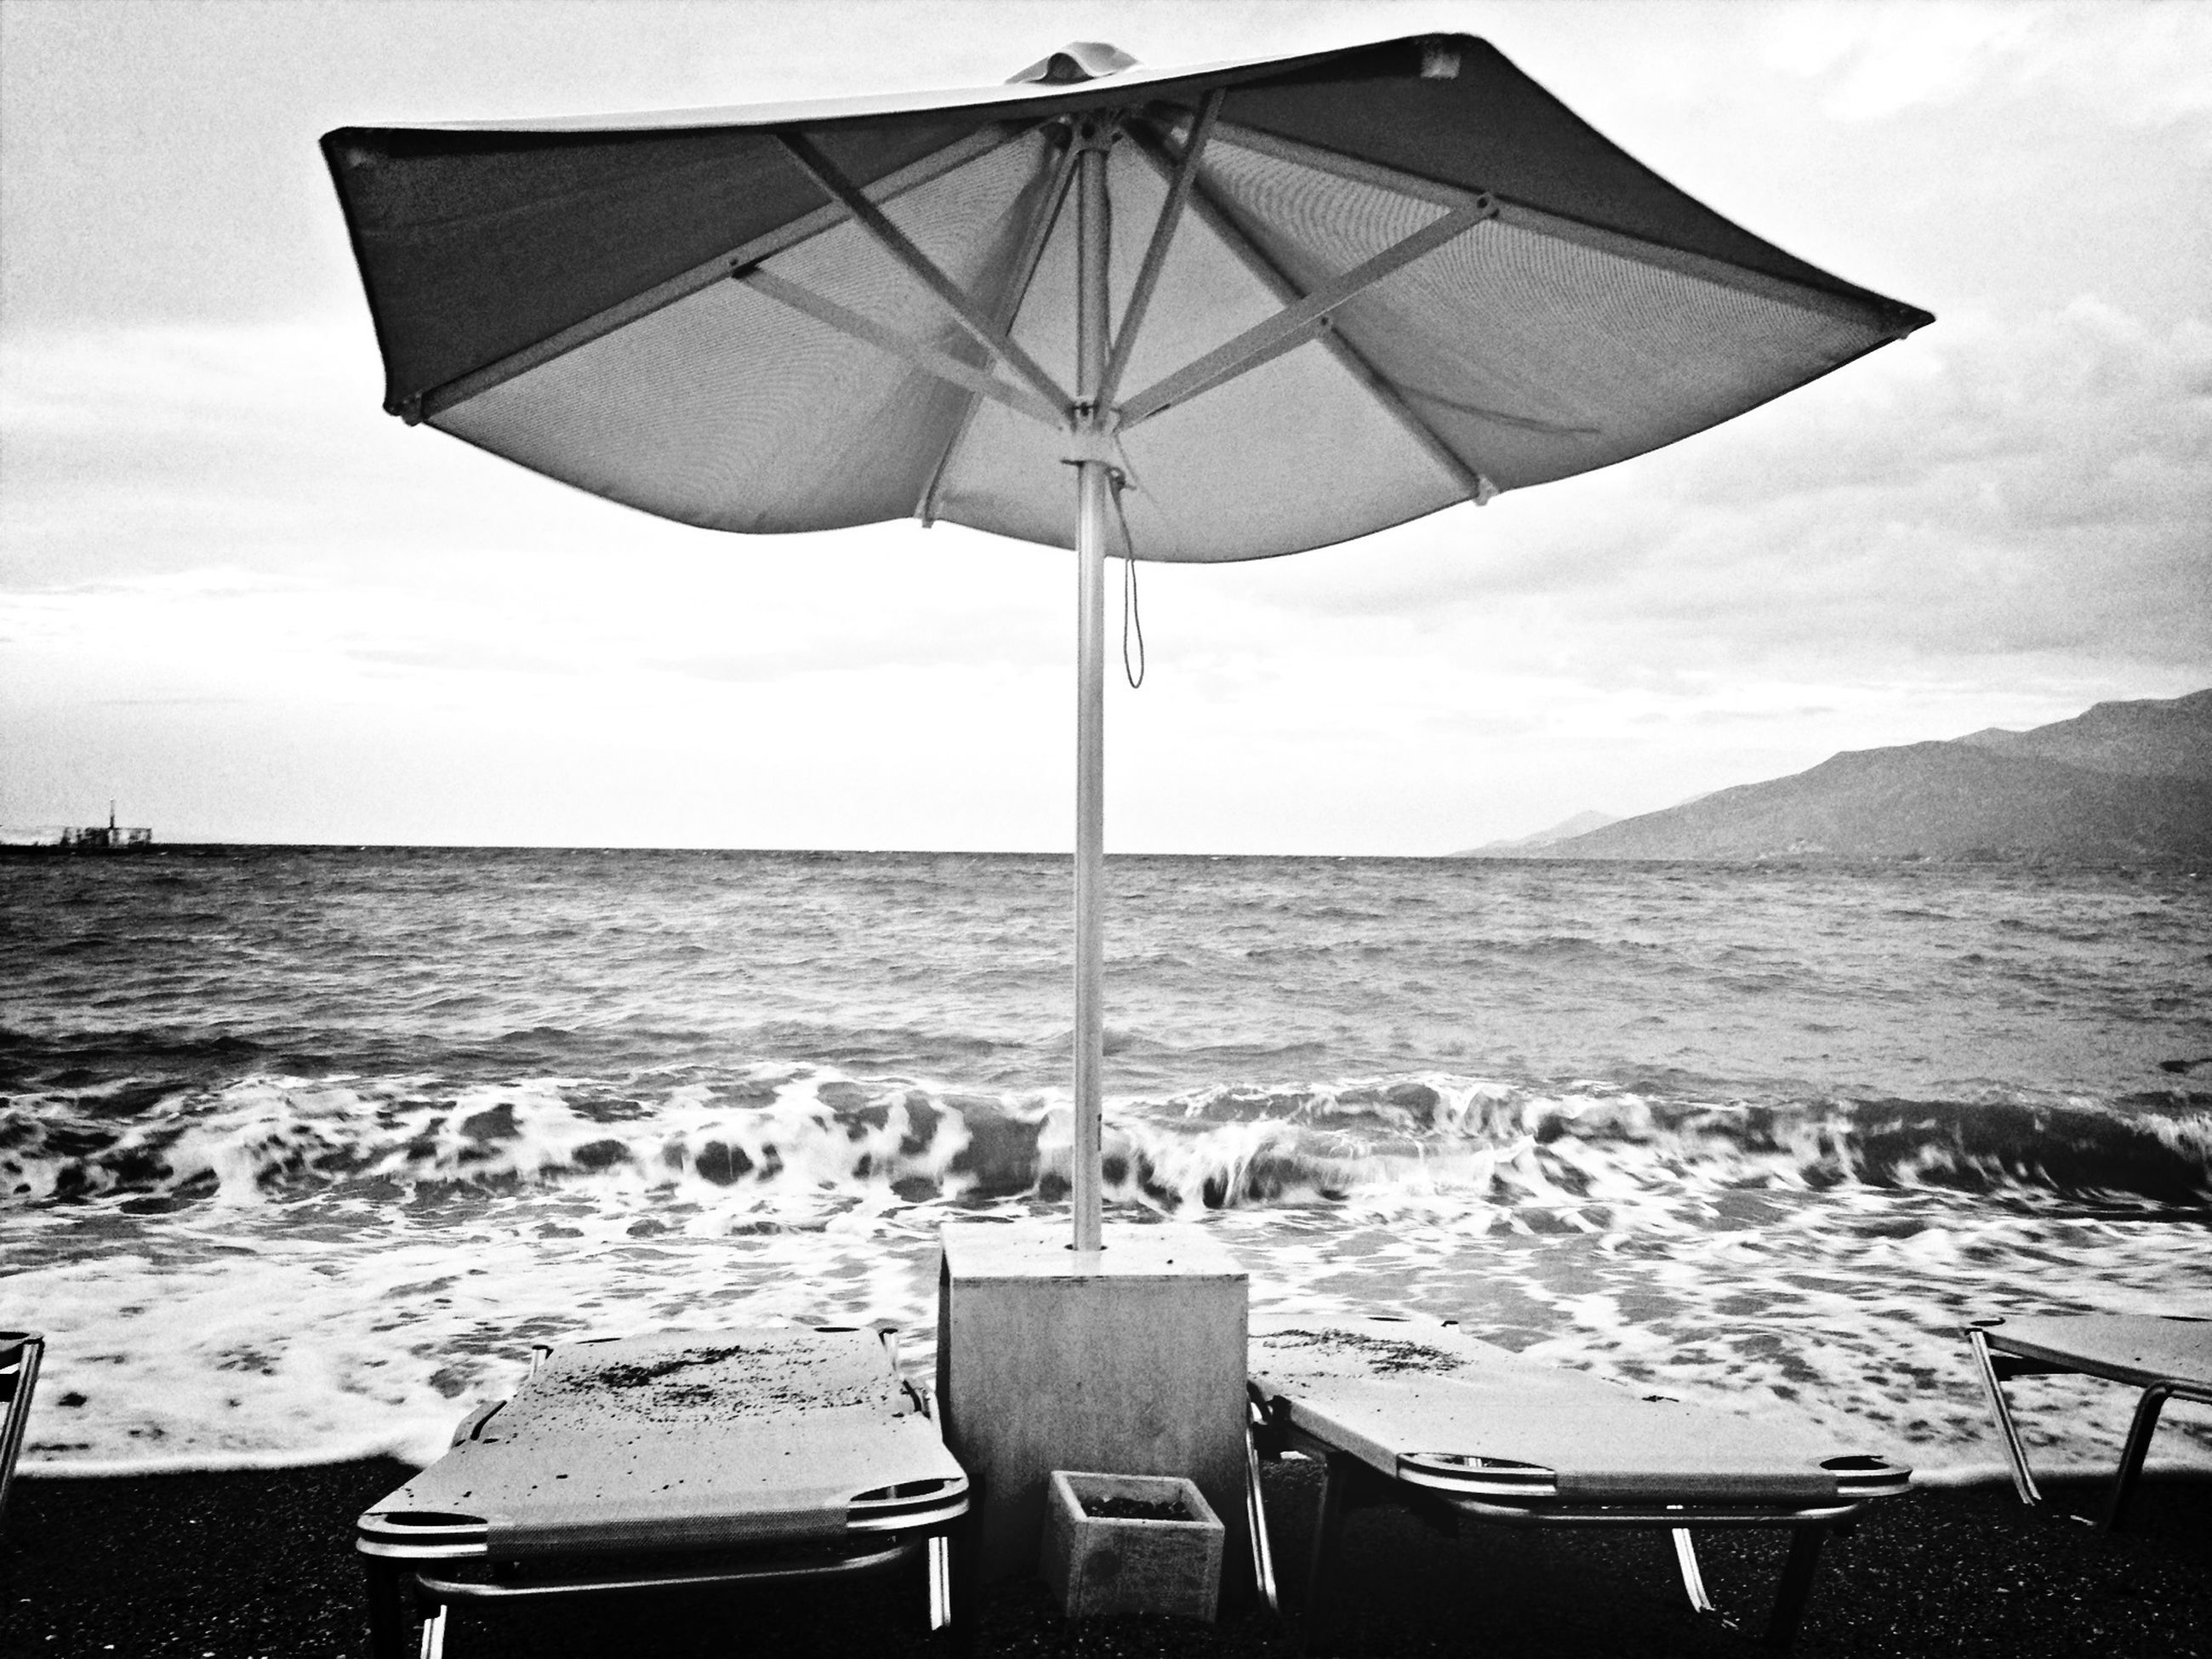 sea, water, sky, beach, horizon over water, beach umbrella, shore, tranquility, scenics, tranquil scene, sunshade, nautical vessel, nature, parasol, cloud - sky, flag, day, building exterior, outdoors, built structure